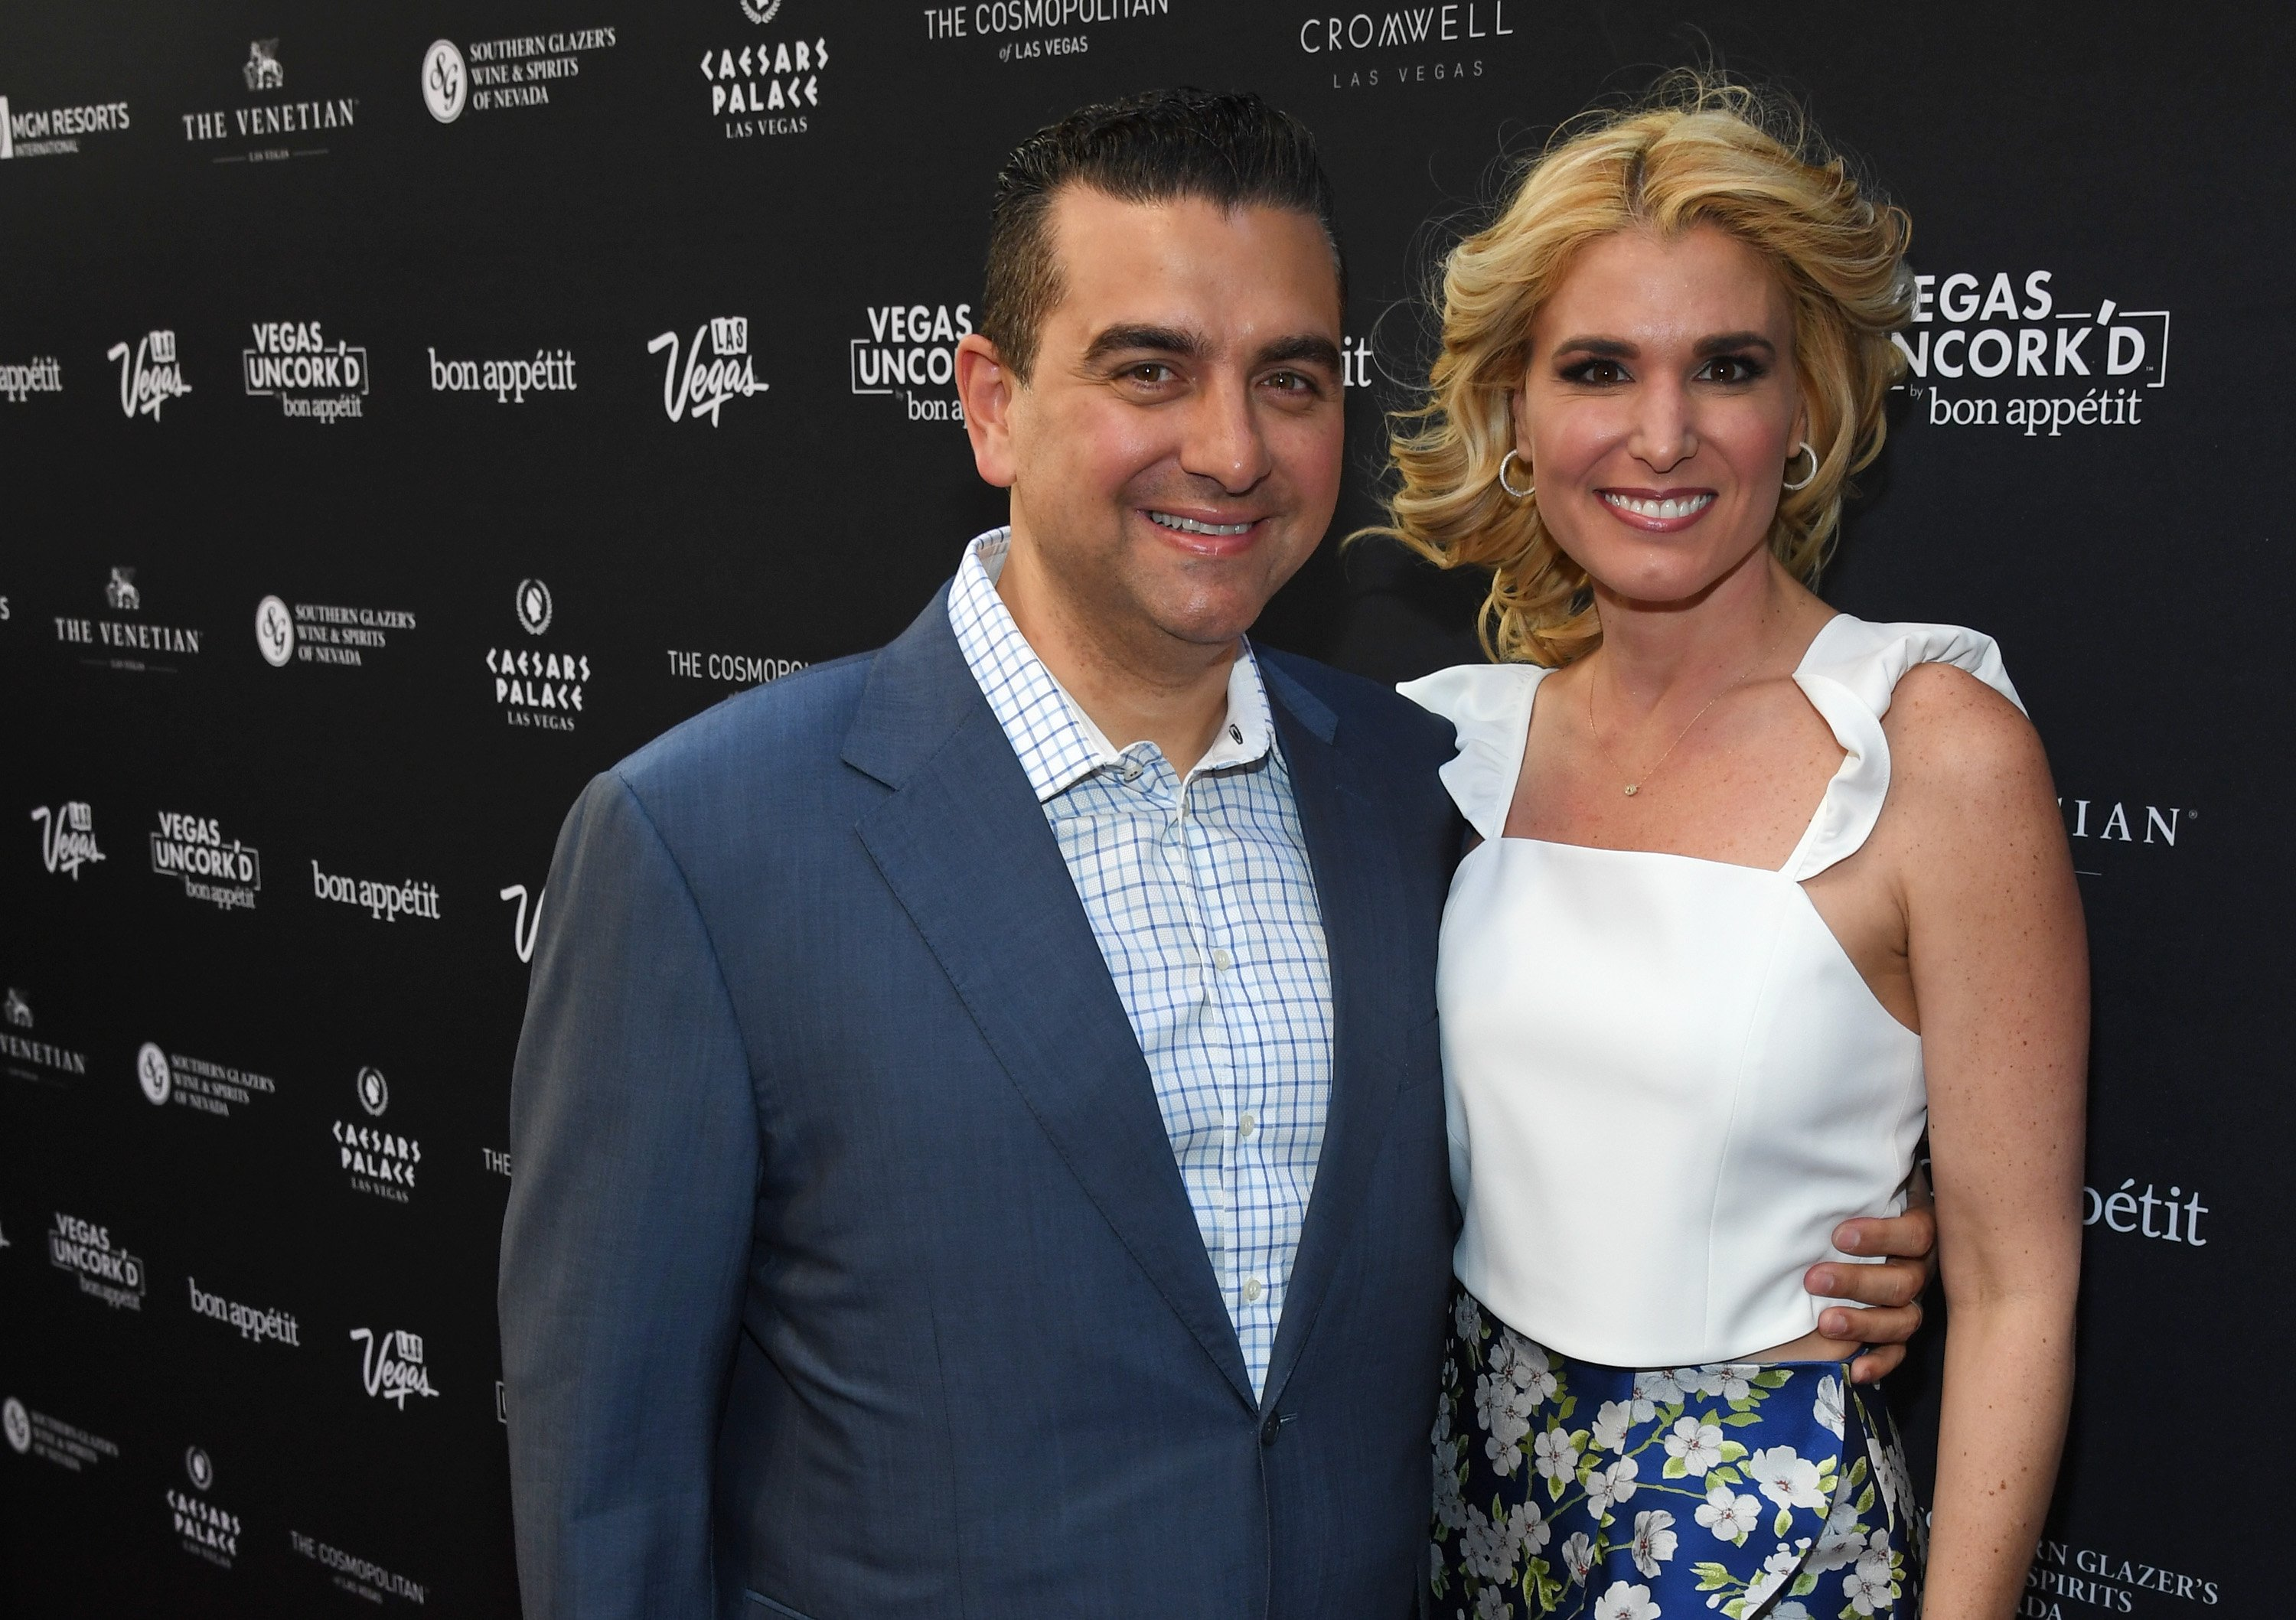 Buddy Valastro and Lisa Valastro attend the 12th annual Vegas Uncork'd by Bon Appetit Grand Tasting event. | Source: Getty Images